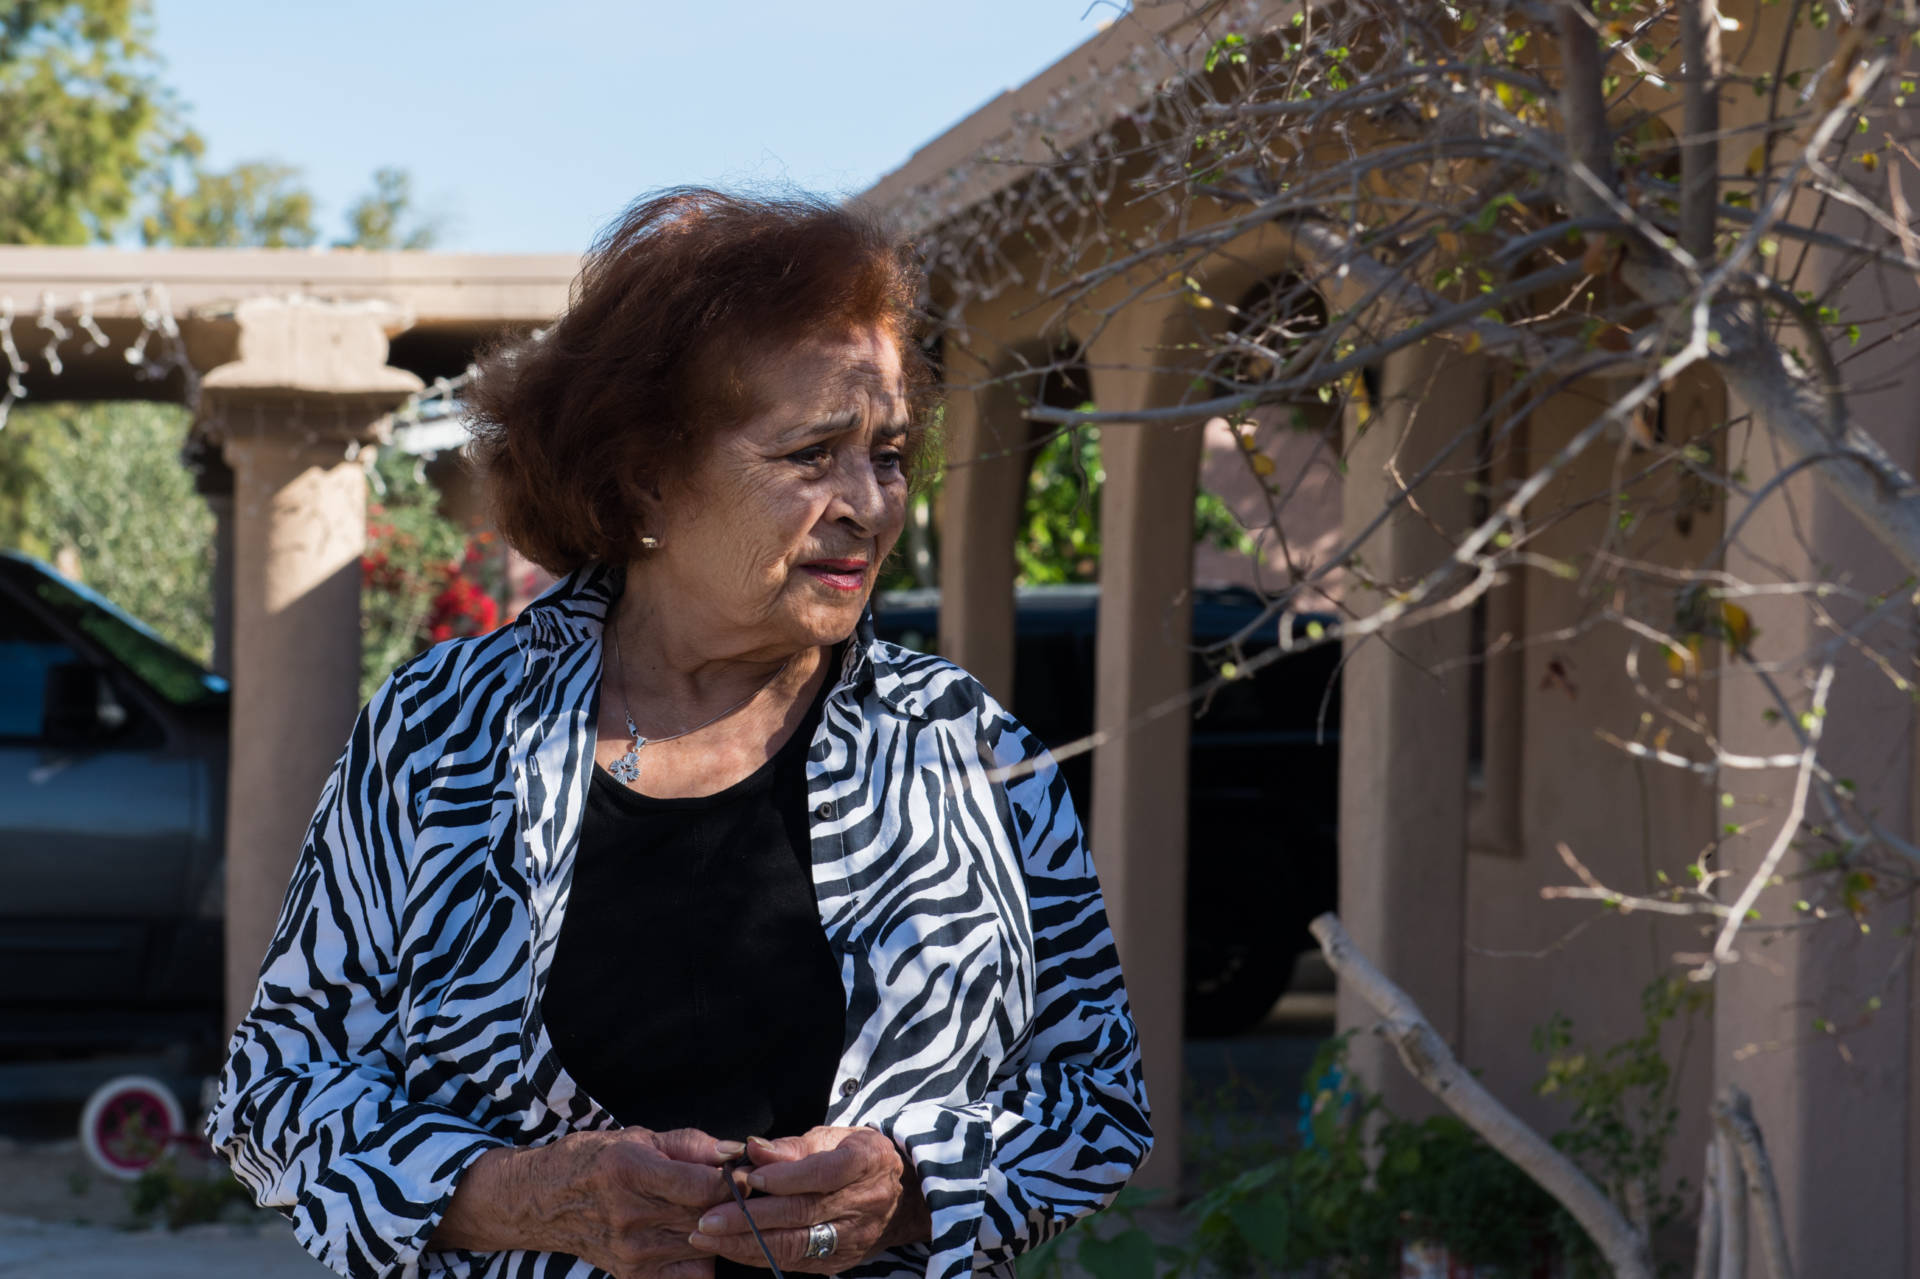 Ramona Morales, 79, had to pay about $6,000 in legal bills on top of a fine because one of her tenants kept chickens in the backyard of a rental house. Some Southern California cities are prosecuting code violators and slapping homeowners with gigantic legal bills they can't afford to pay. Jessica Chou for NPR